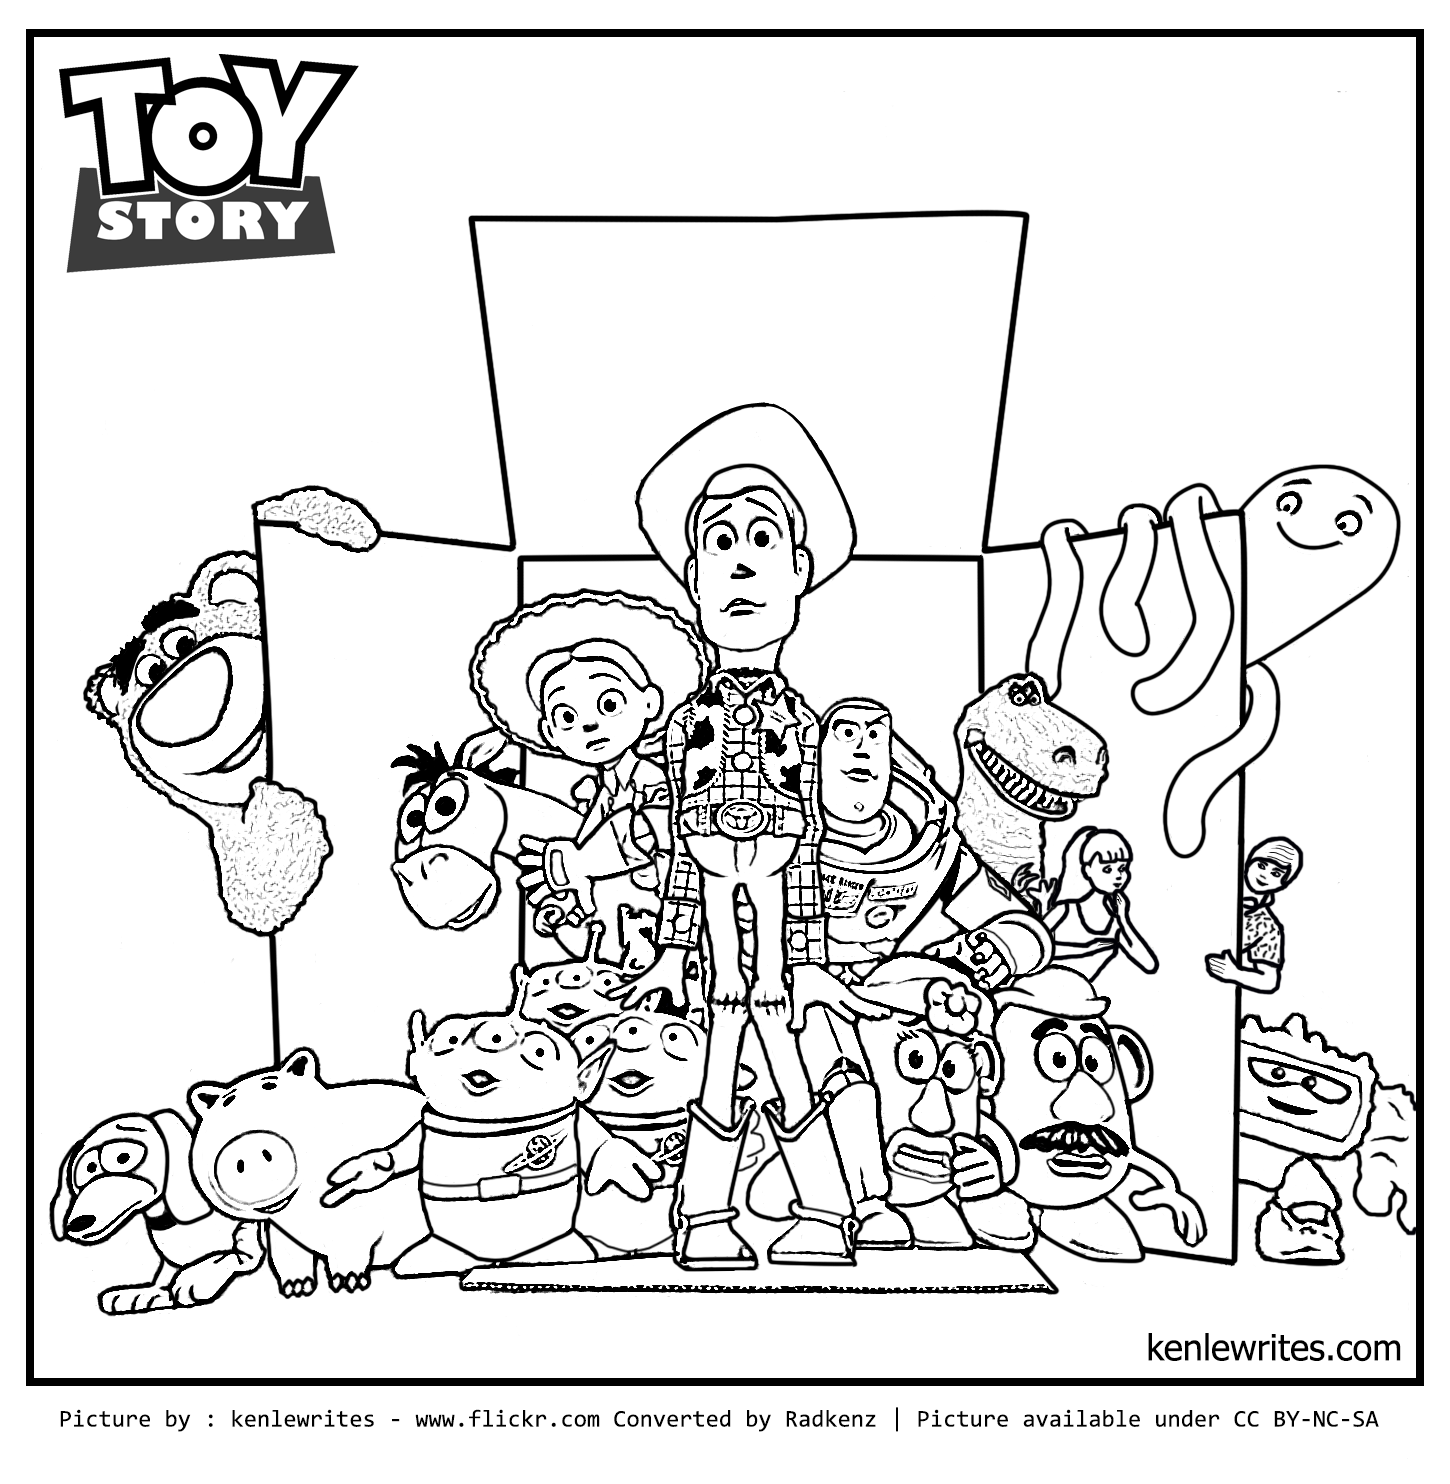 coloring pages disney toy story toy story coloring pages 2 disneyclipscom pages coloring story toy disney